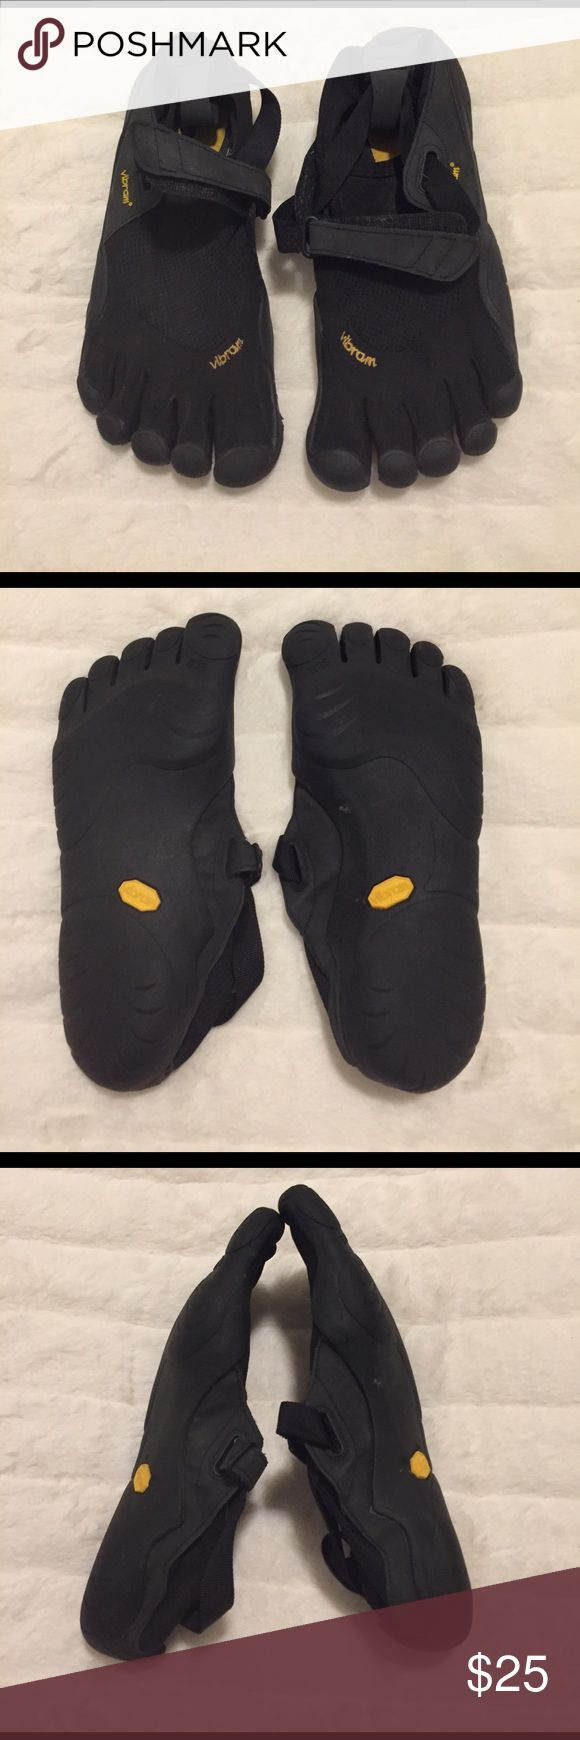 Vibram toe shoes Super comfortable. In good condition. Vibram Shoes